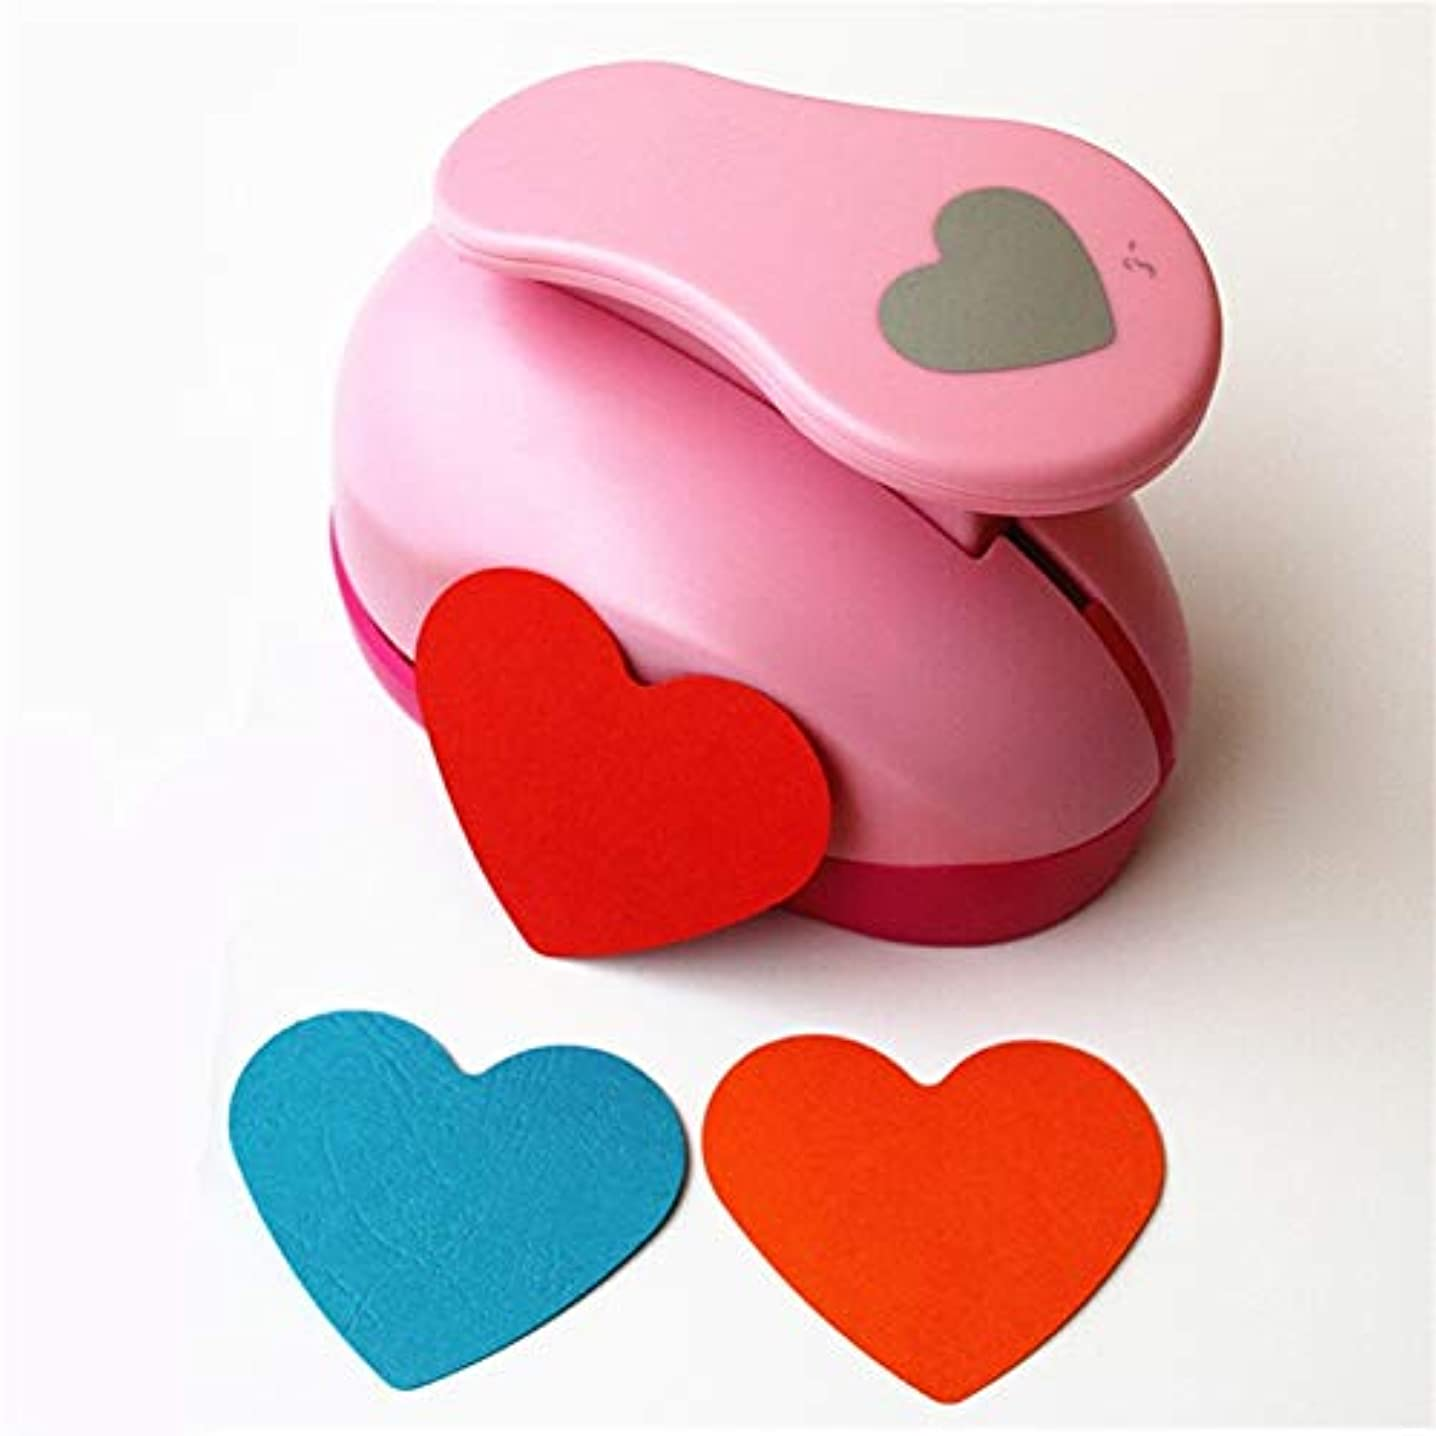 CADY Crafts Punch 3-Inch Paper Punches Craft Punches (Heart)